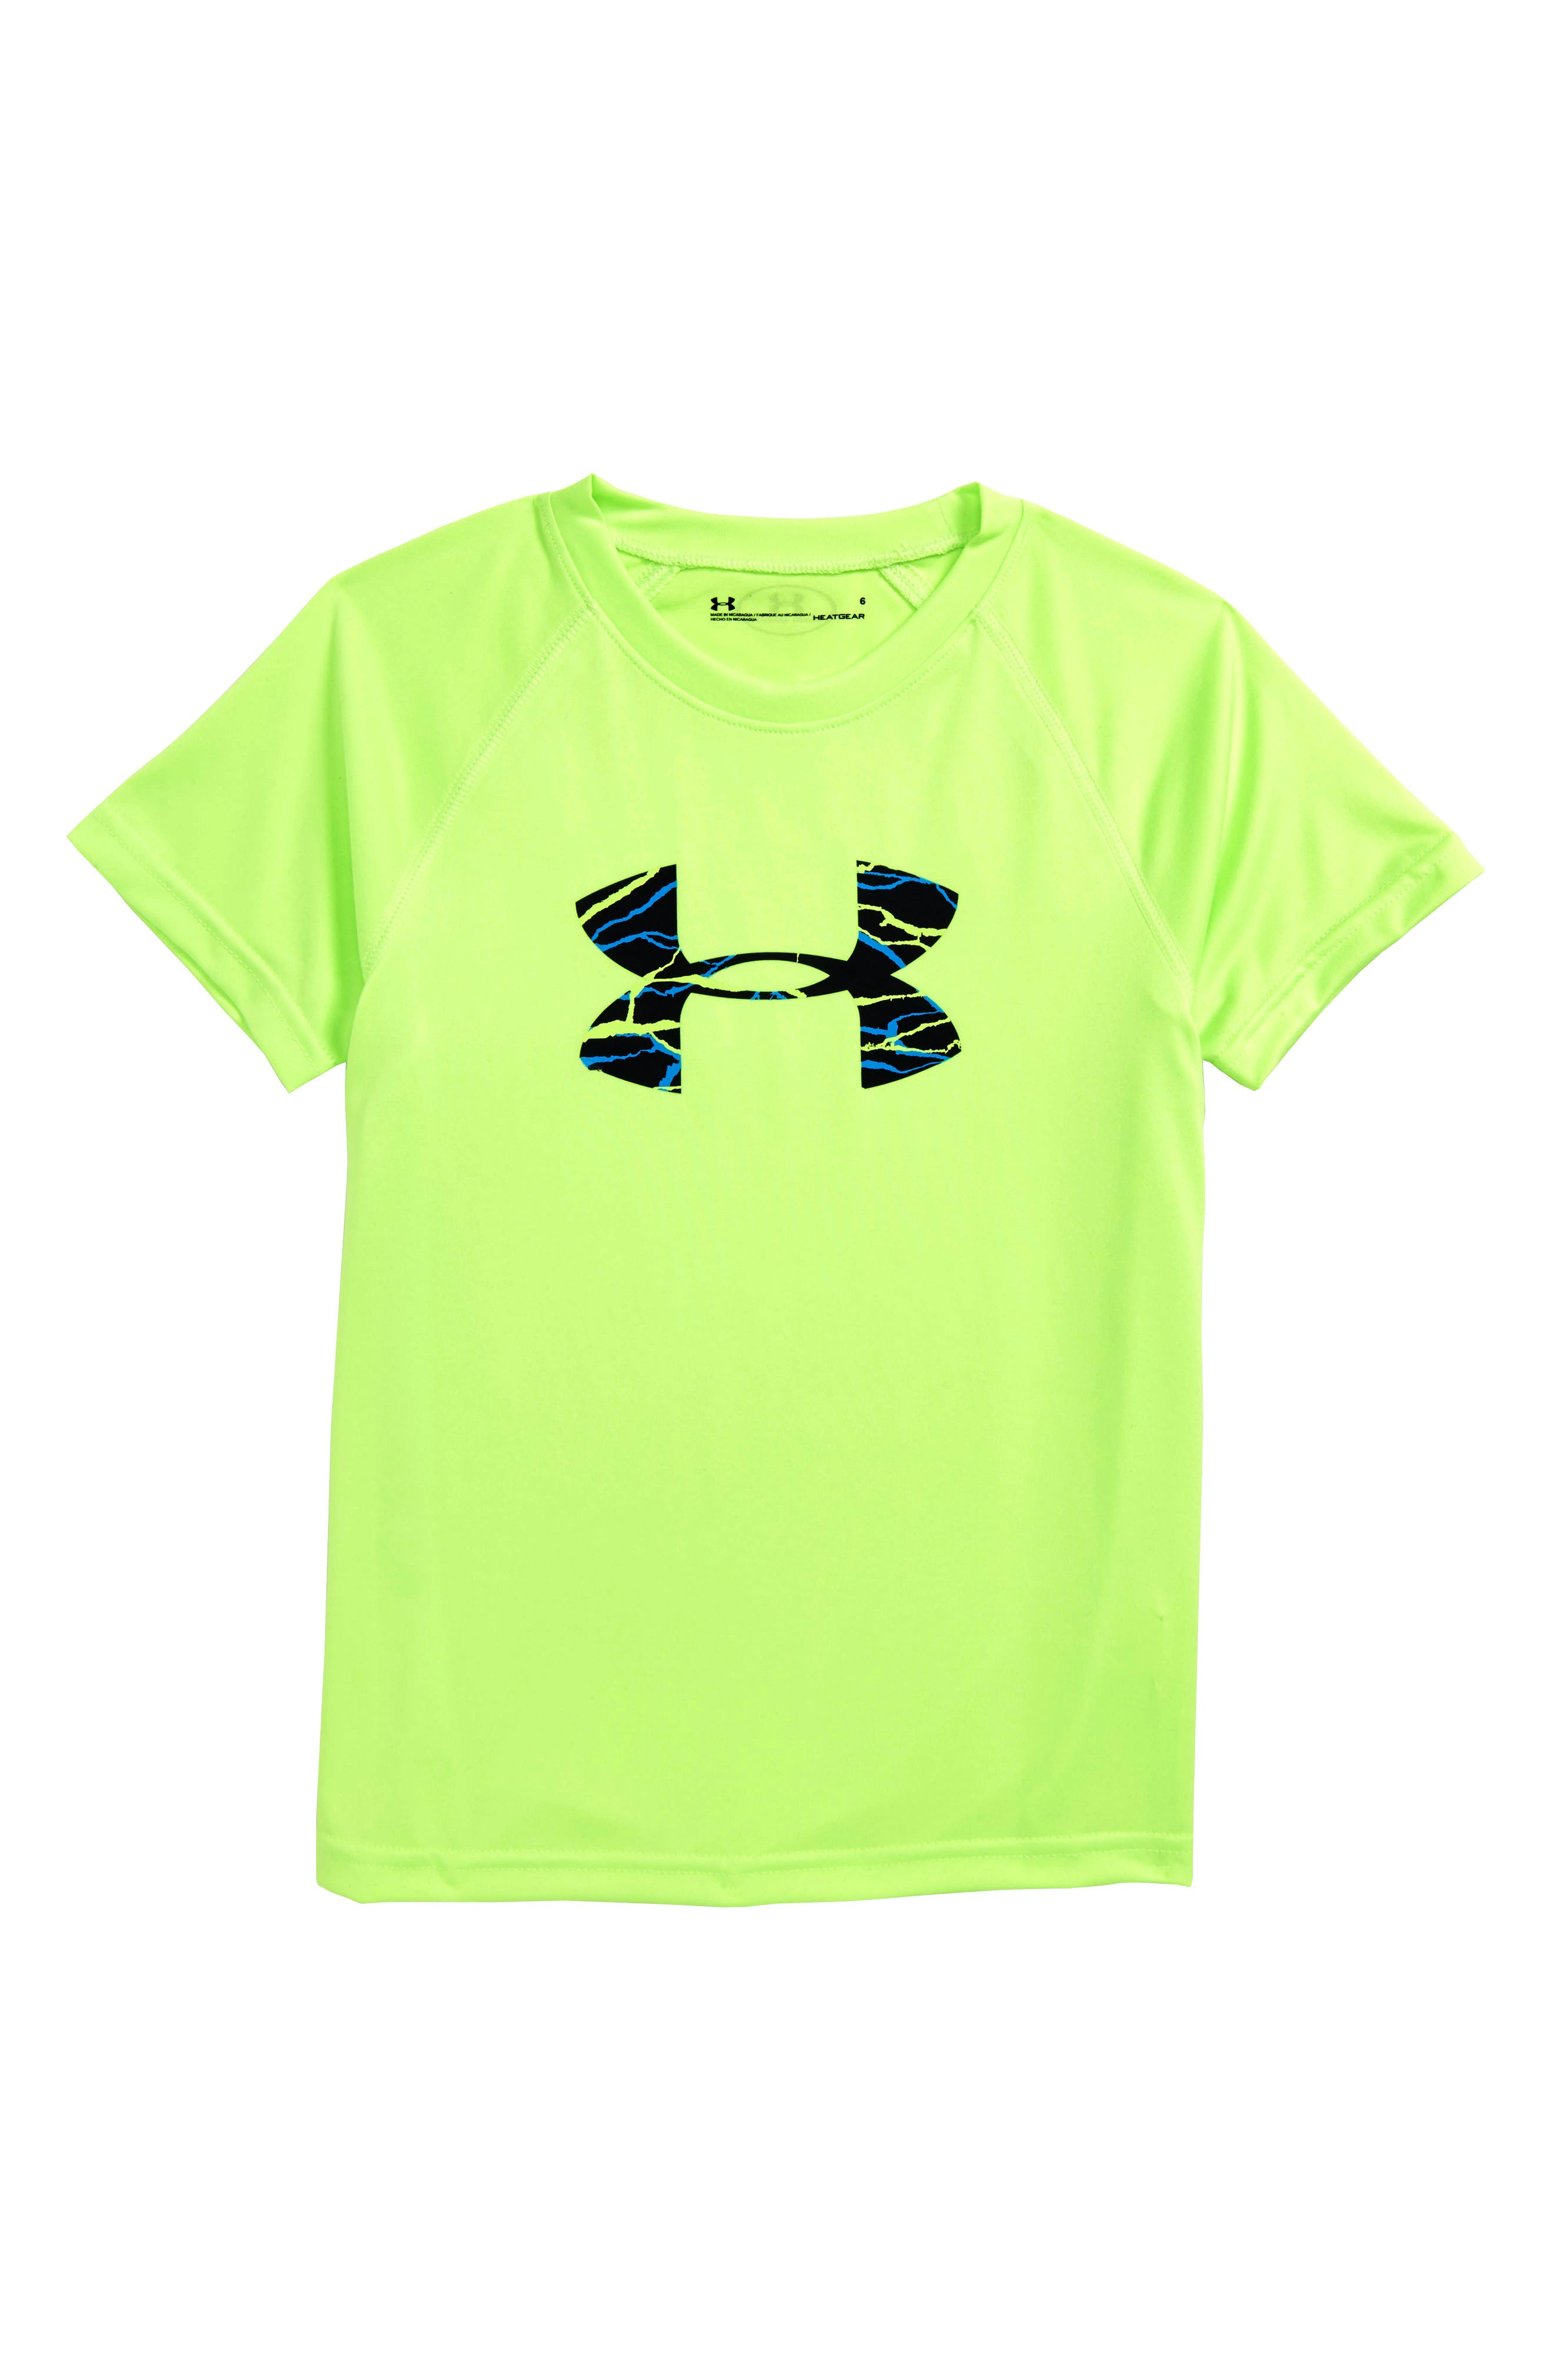 Alternate Image 1 Selected - Under Armour Voltage Graphic HeatGear® T-Shirt (Toddler Boys & Little Boys)